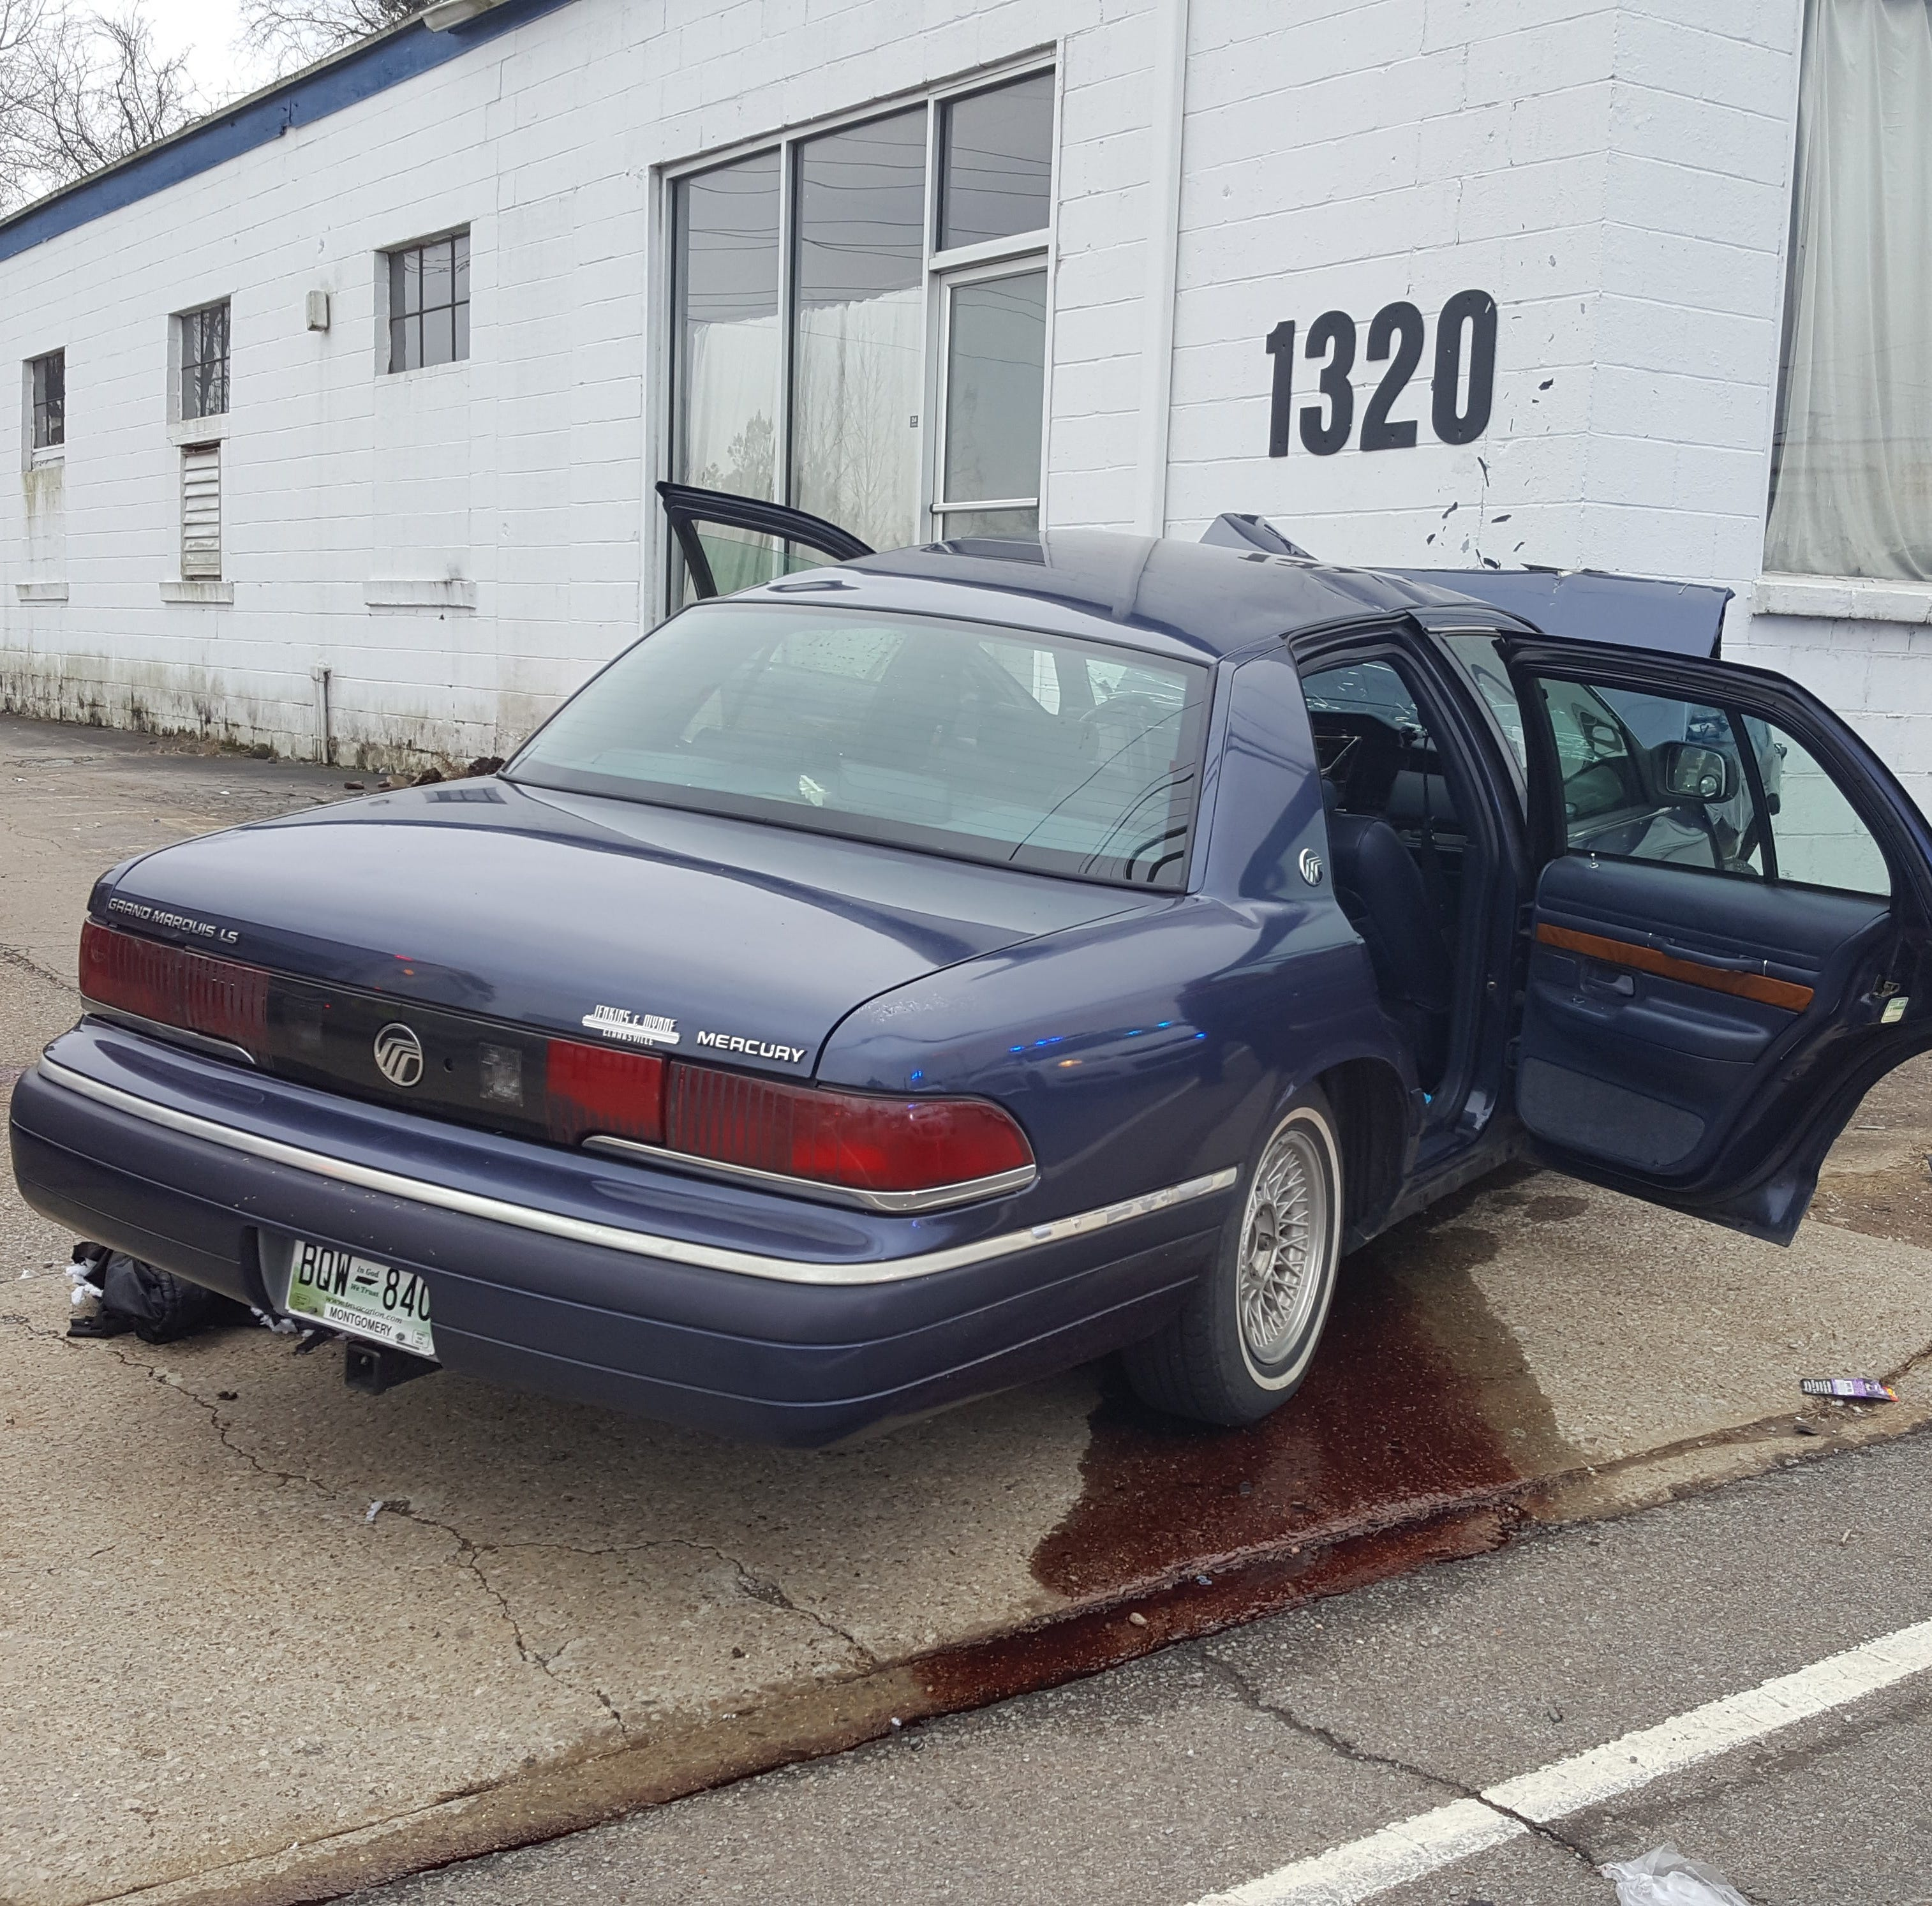 Driver killed after crashing a car into an empty building